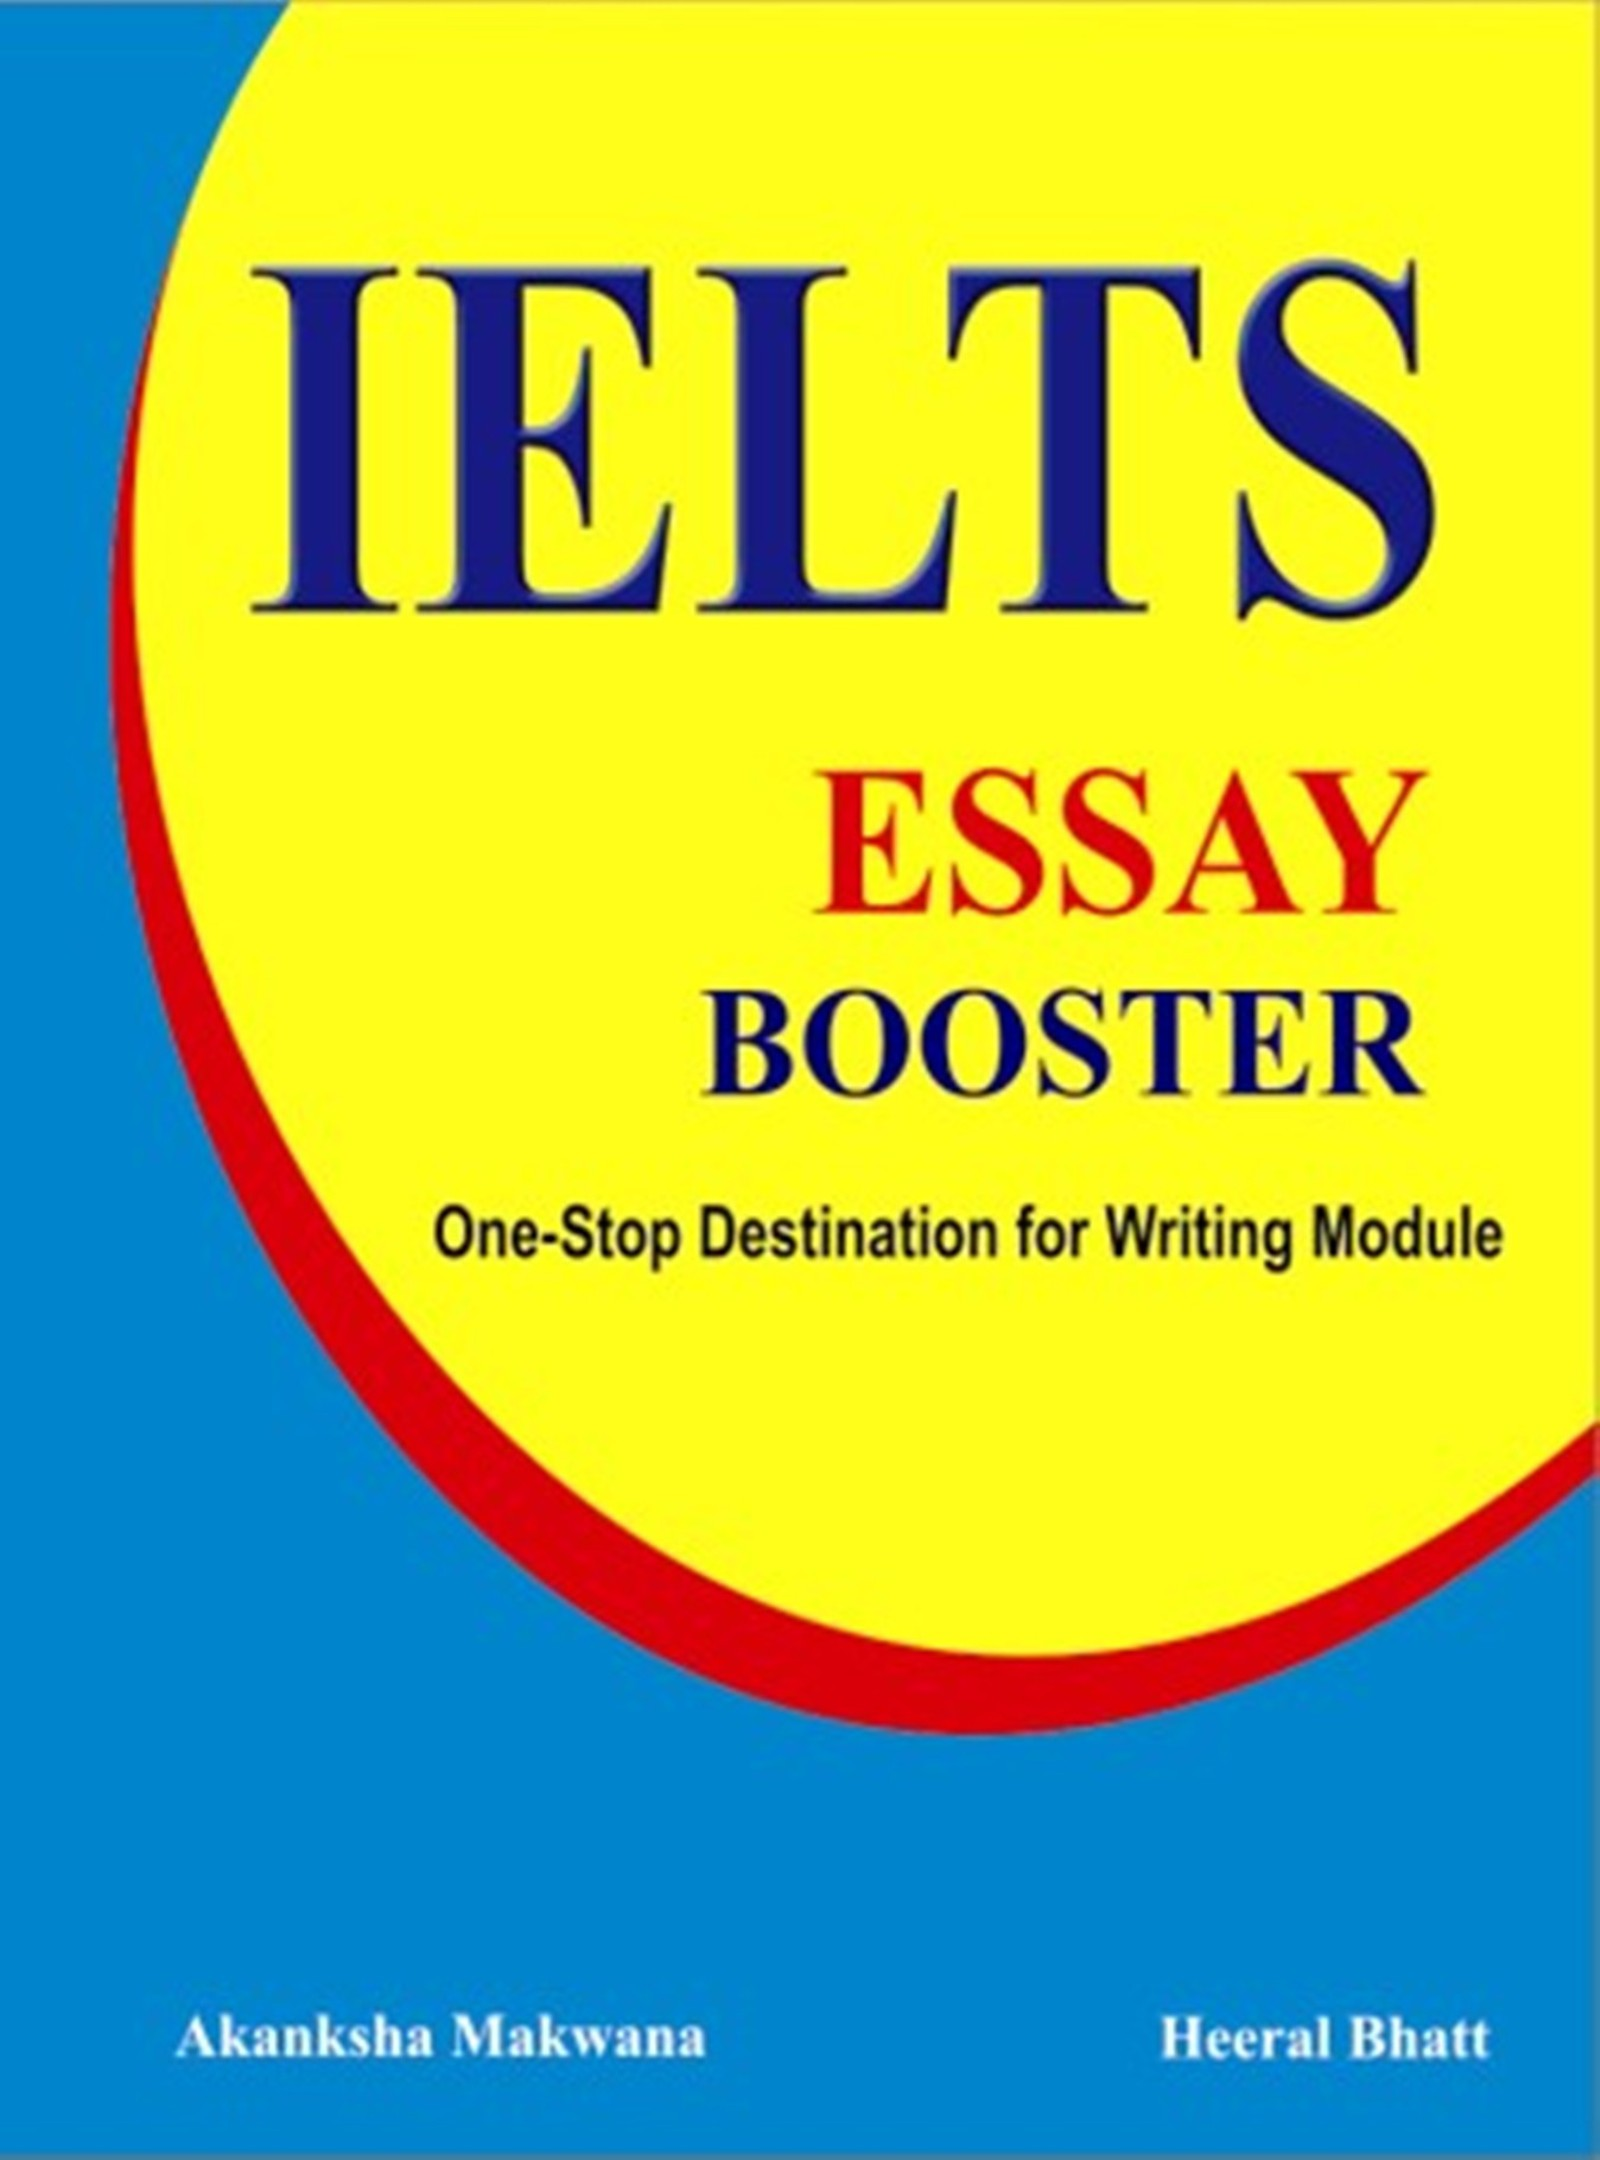 Example Of A College Essay Paper Ielts Essay  Proposal Argument Essay Examples also Business Essays Samples Smashwords  Ielts Essay Booster  Onestop Destination For The  College Vs High School Essay Compare And Contrast